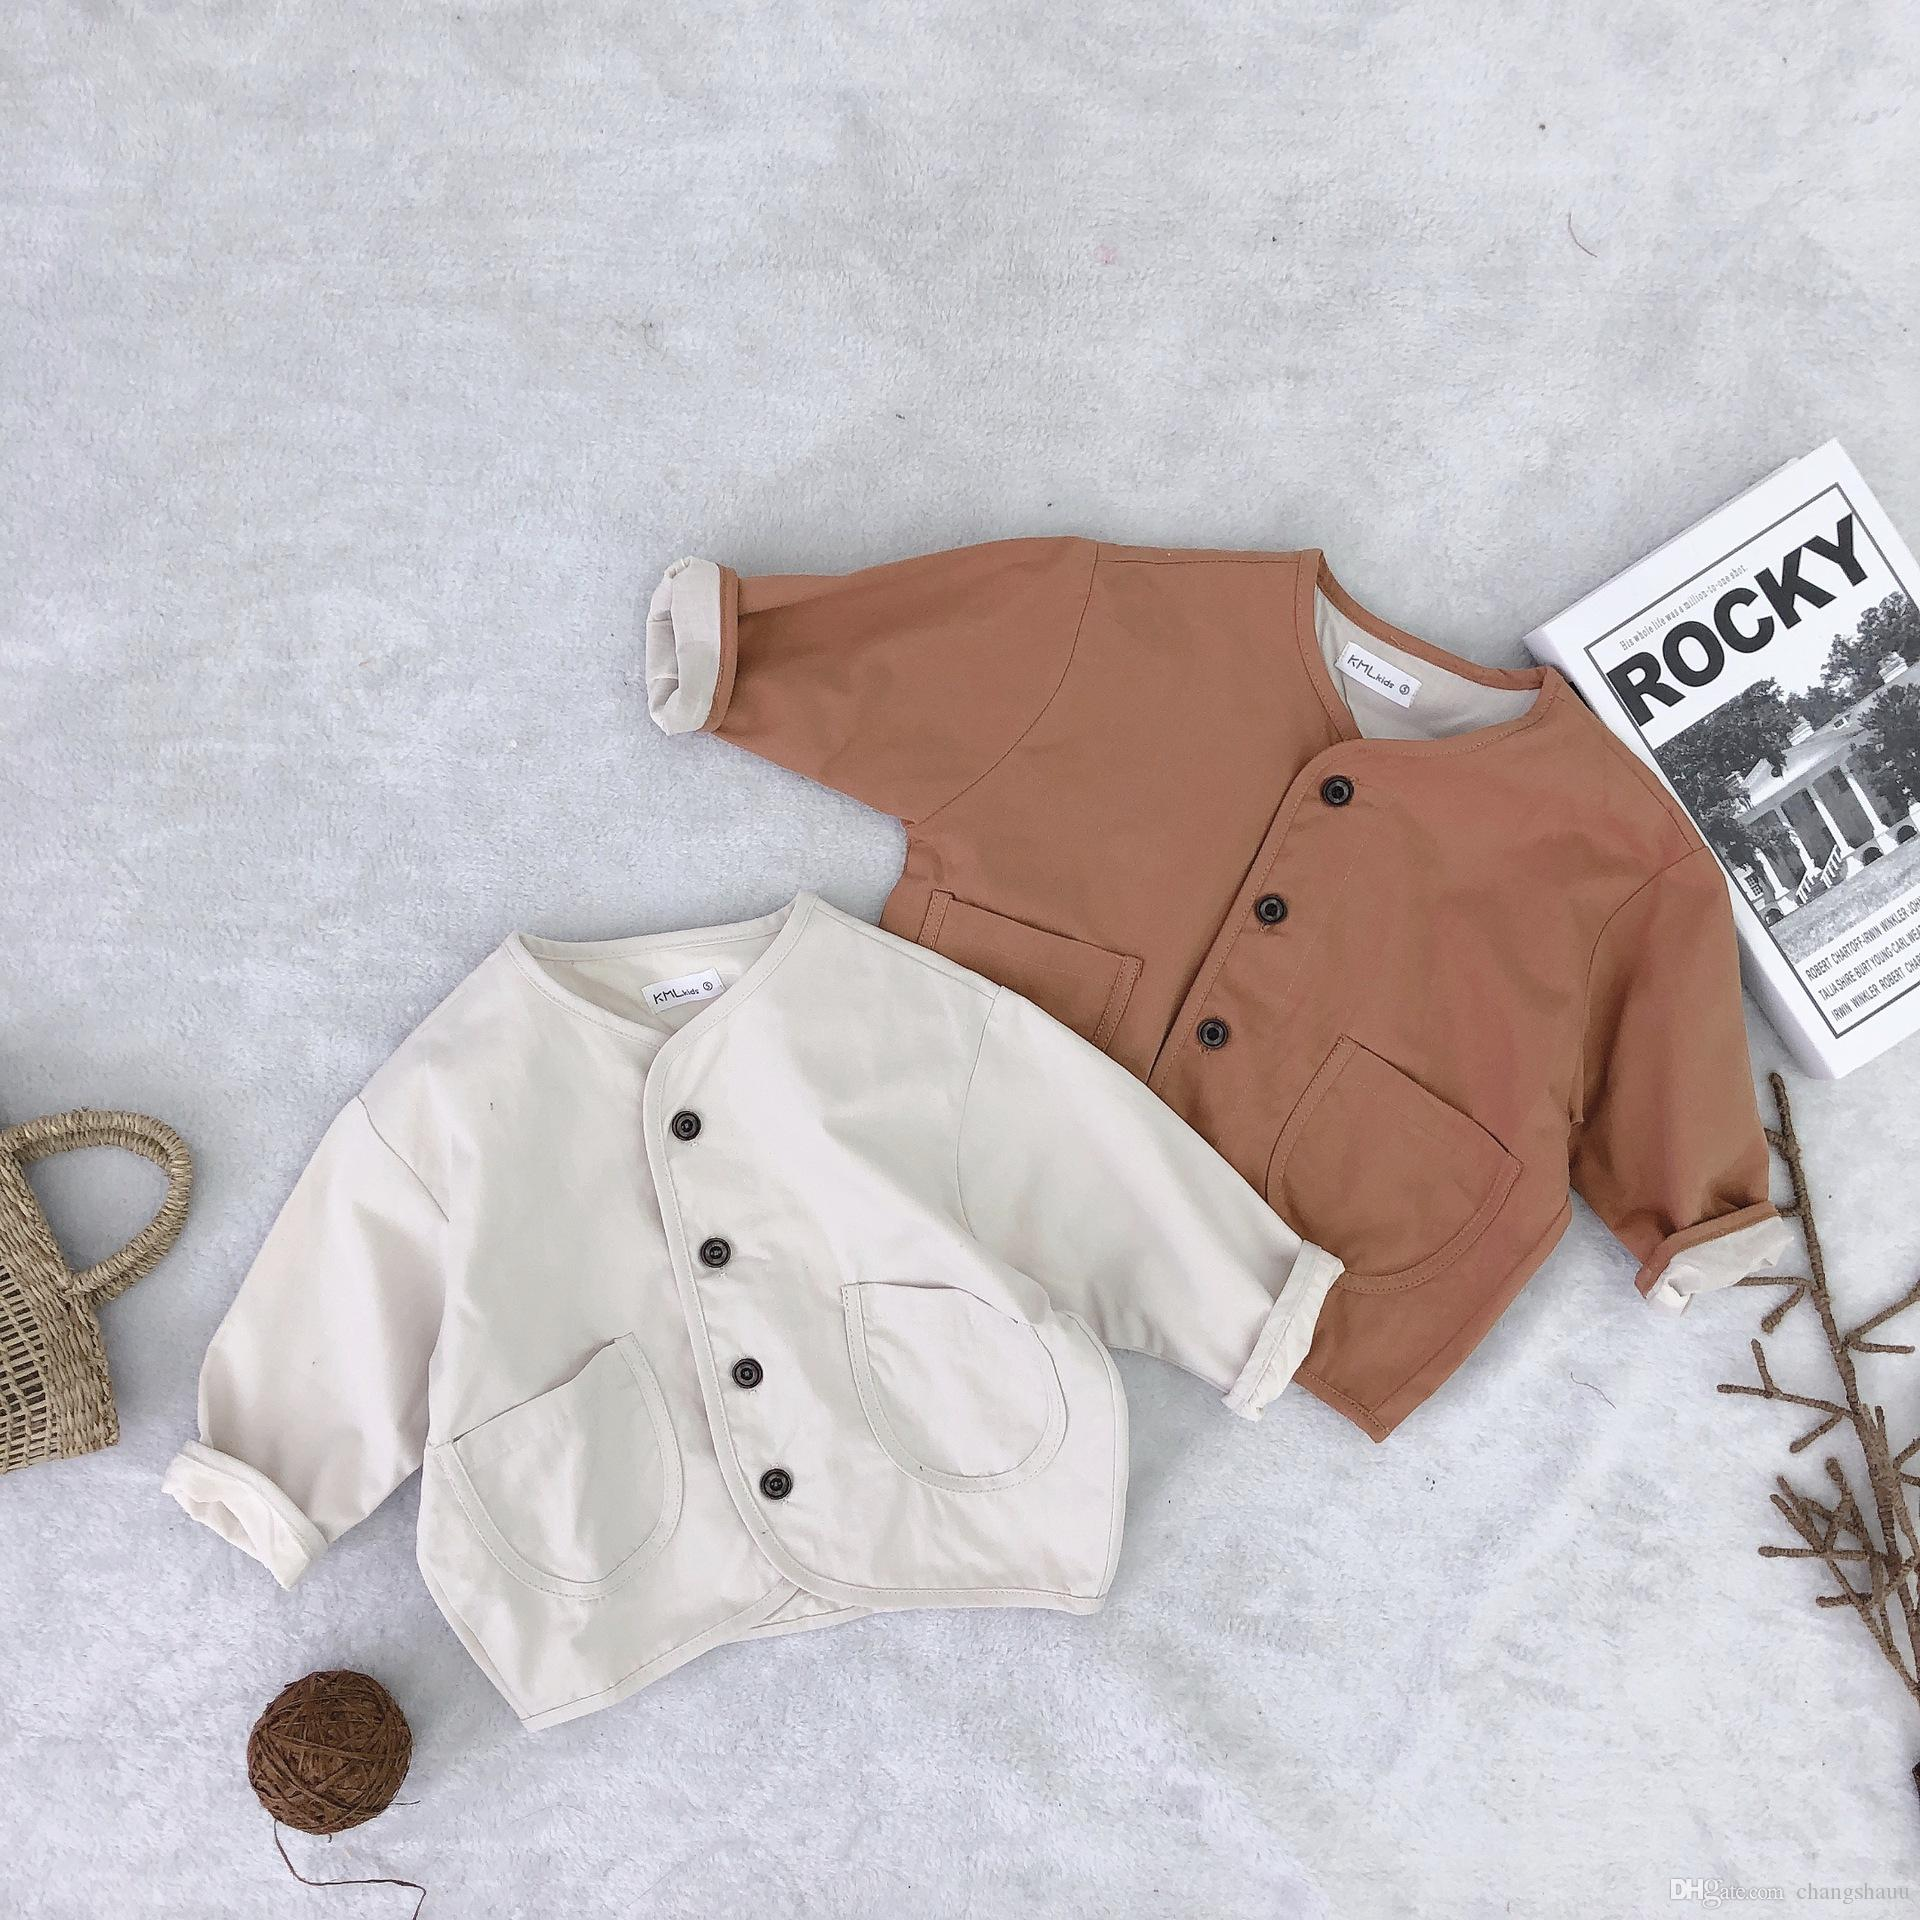 Children's Clothing New Kid's Clothes Korean Pure Colored Coat Pure Cotton Single-row Button Top Collar-less Casual Jacket